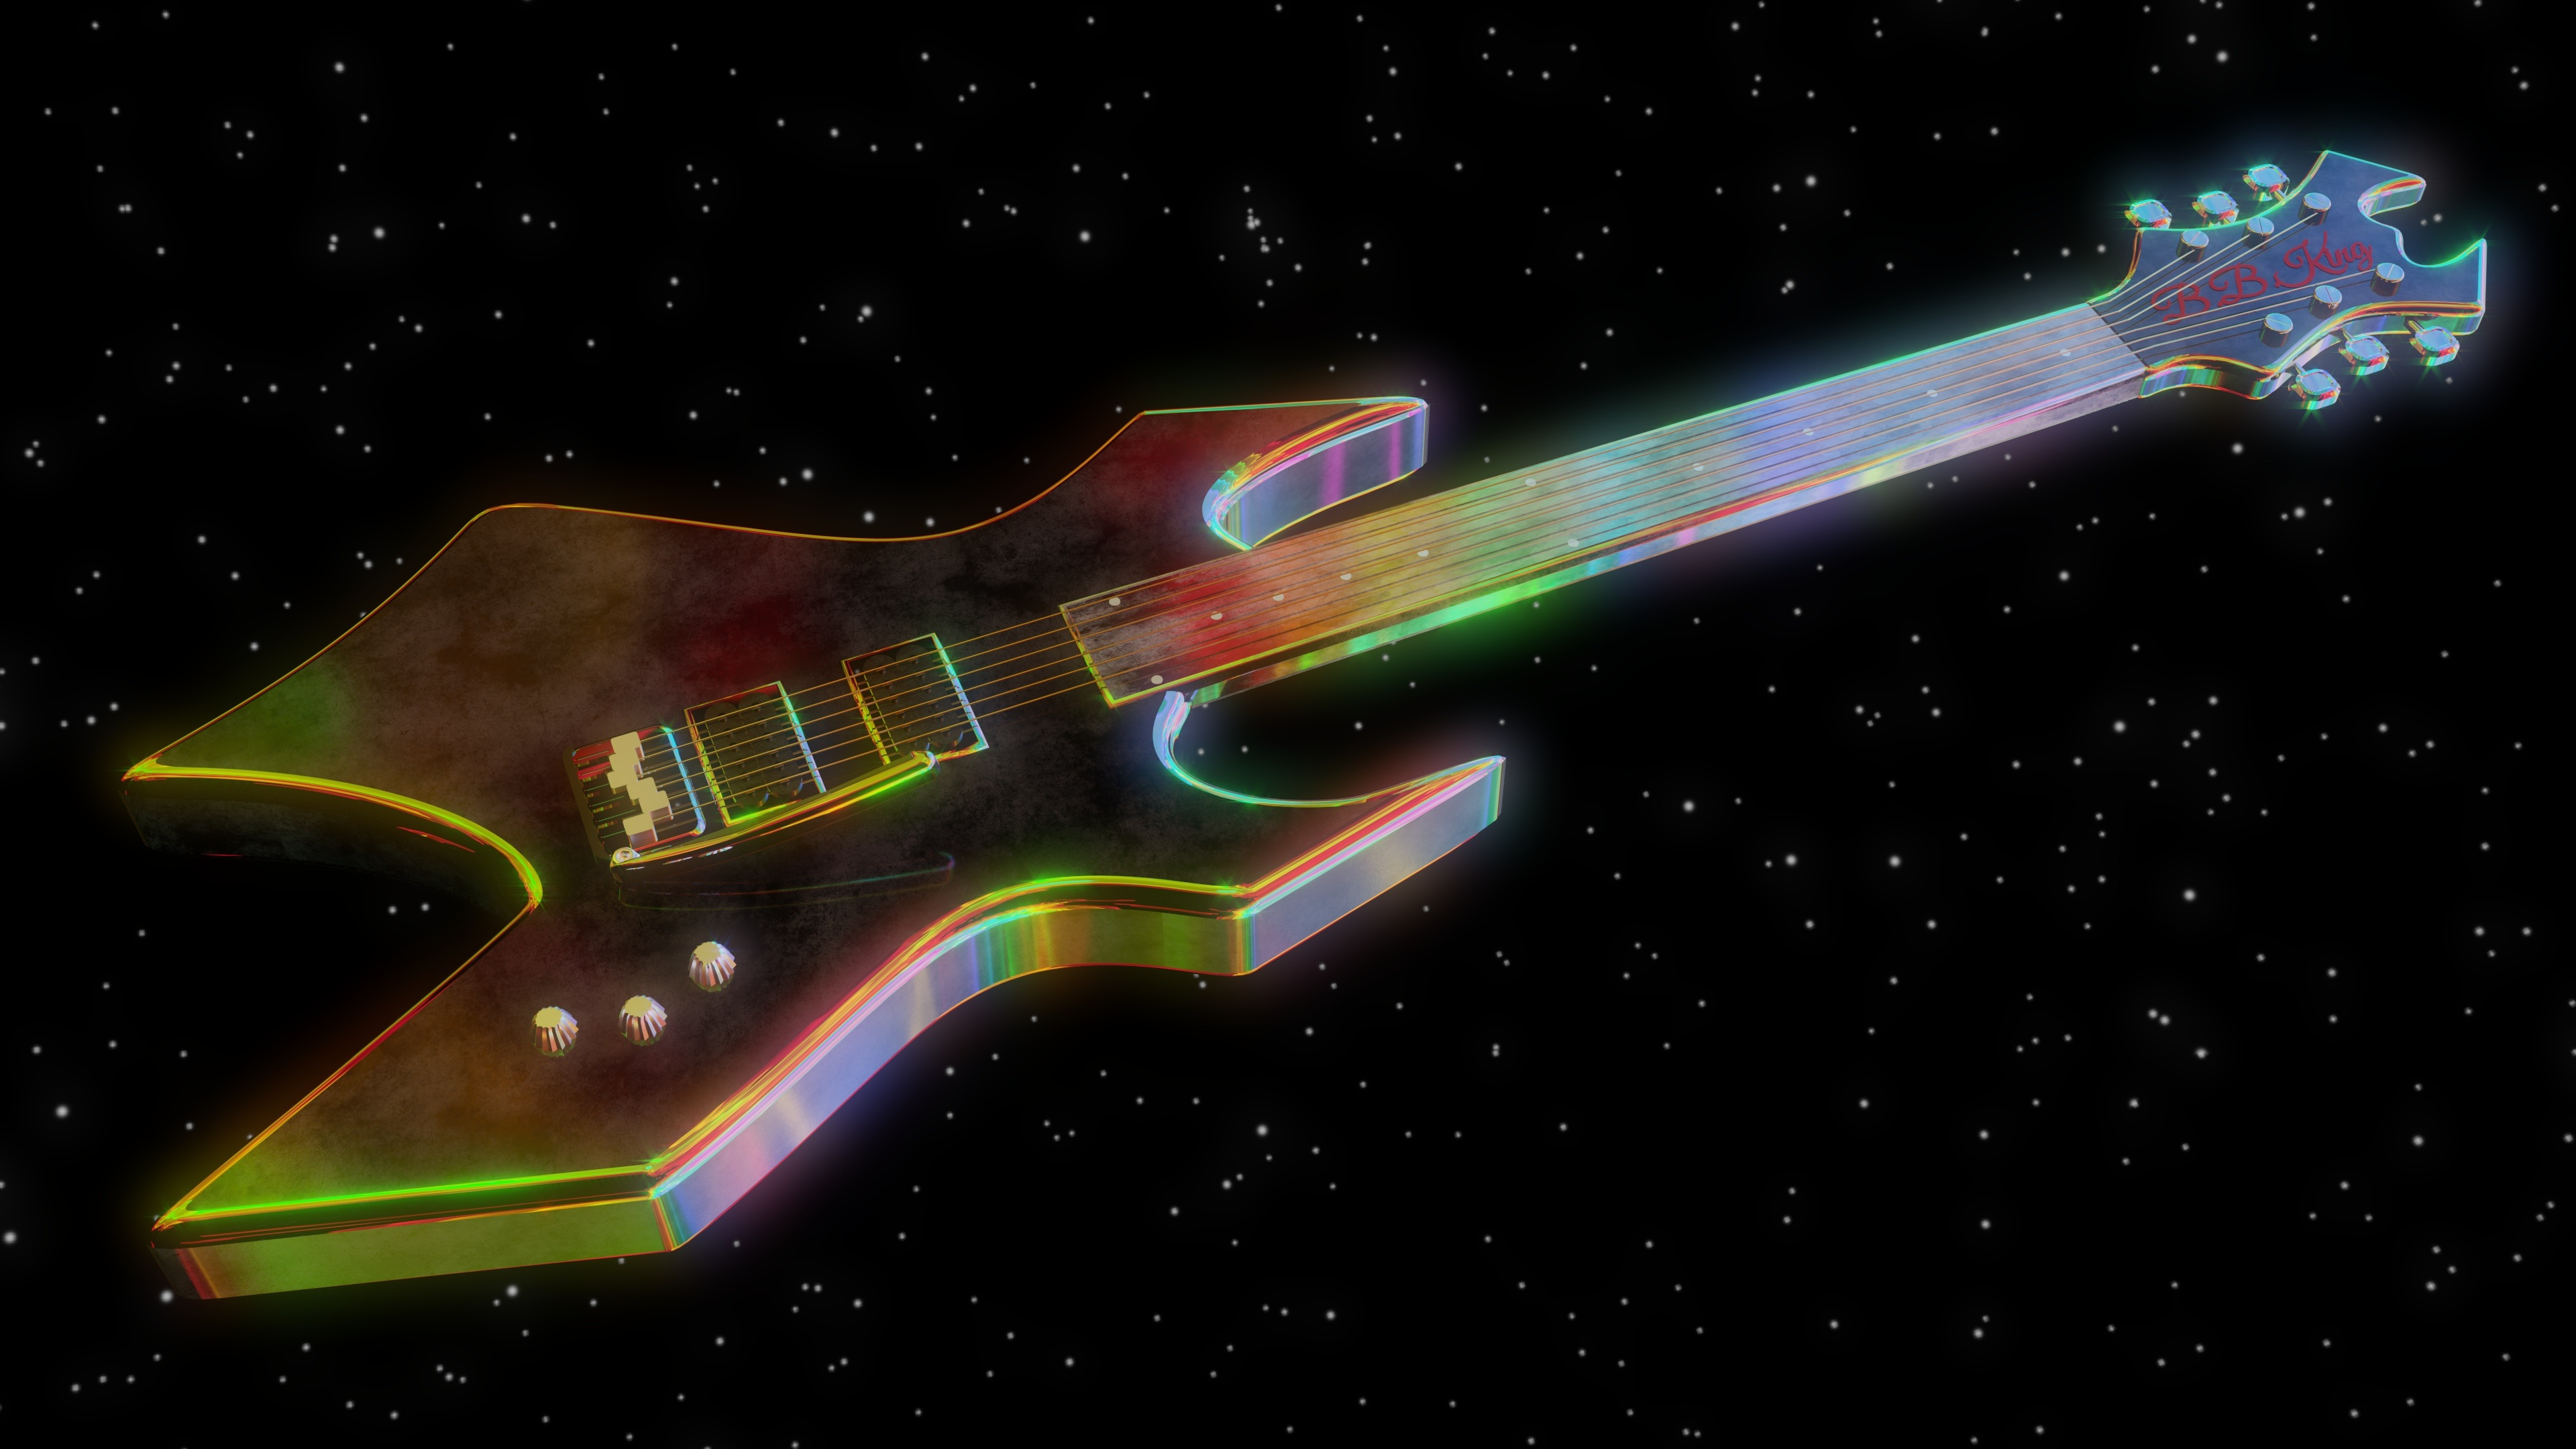 Colorful Electric Guitar In Space 4k Uhd Wallpaper